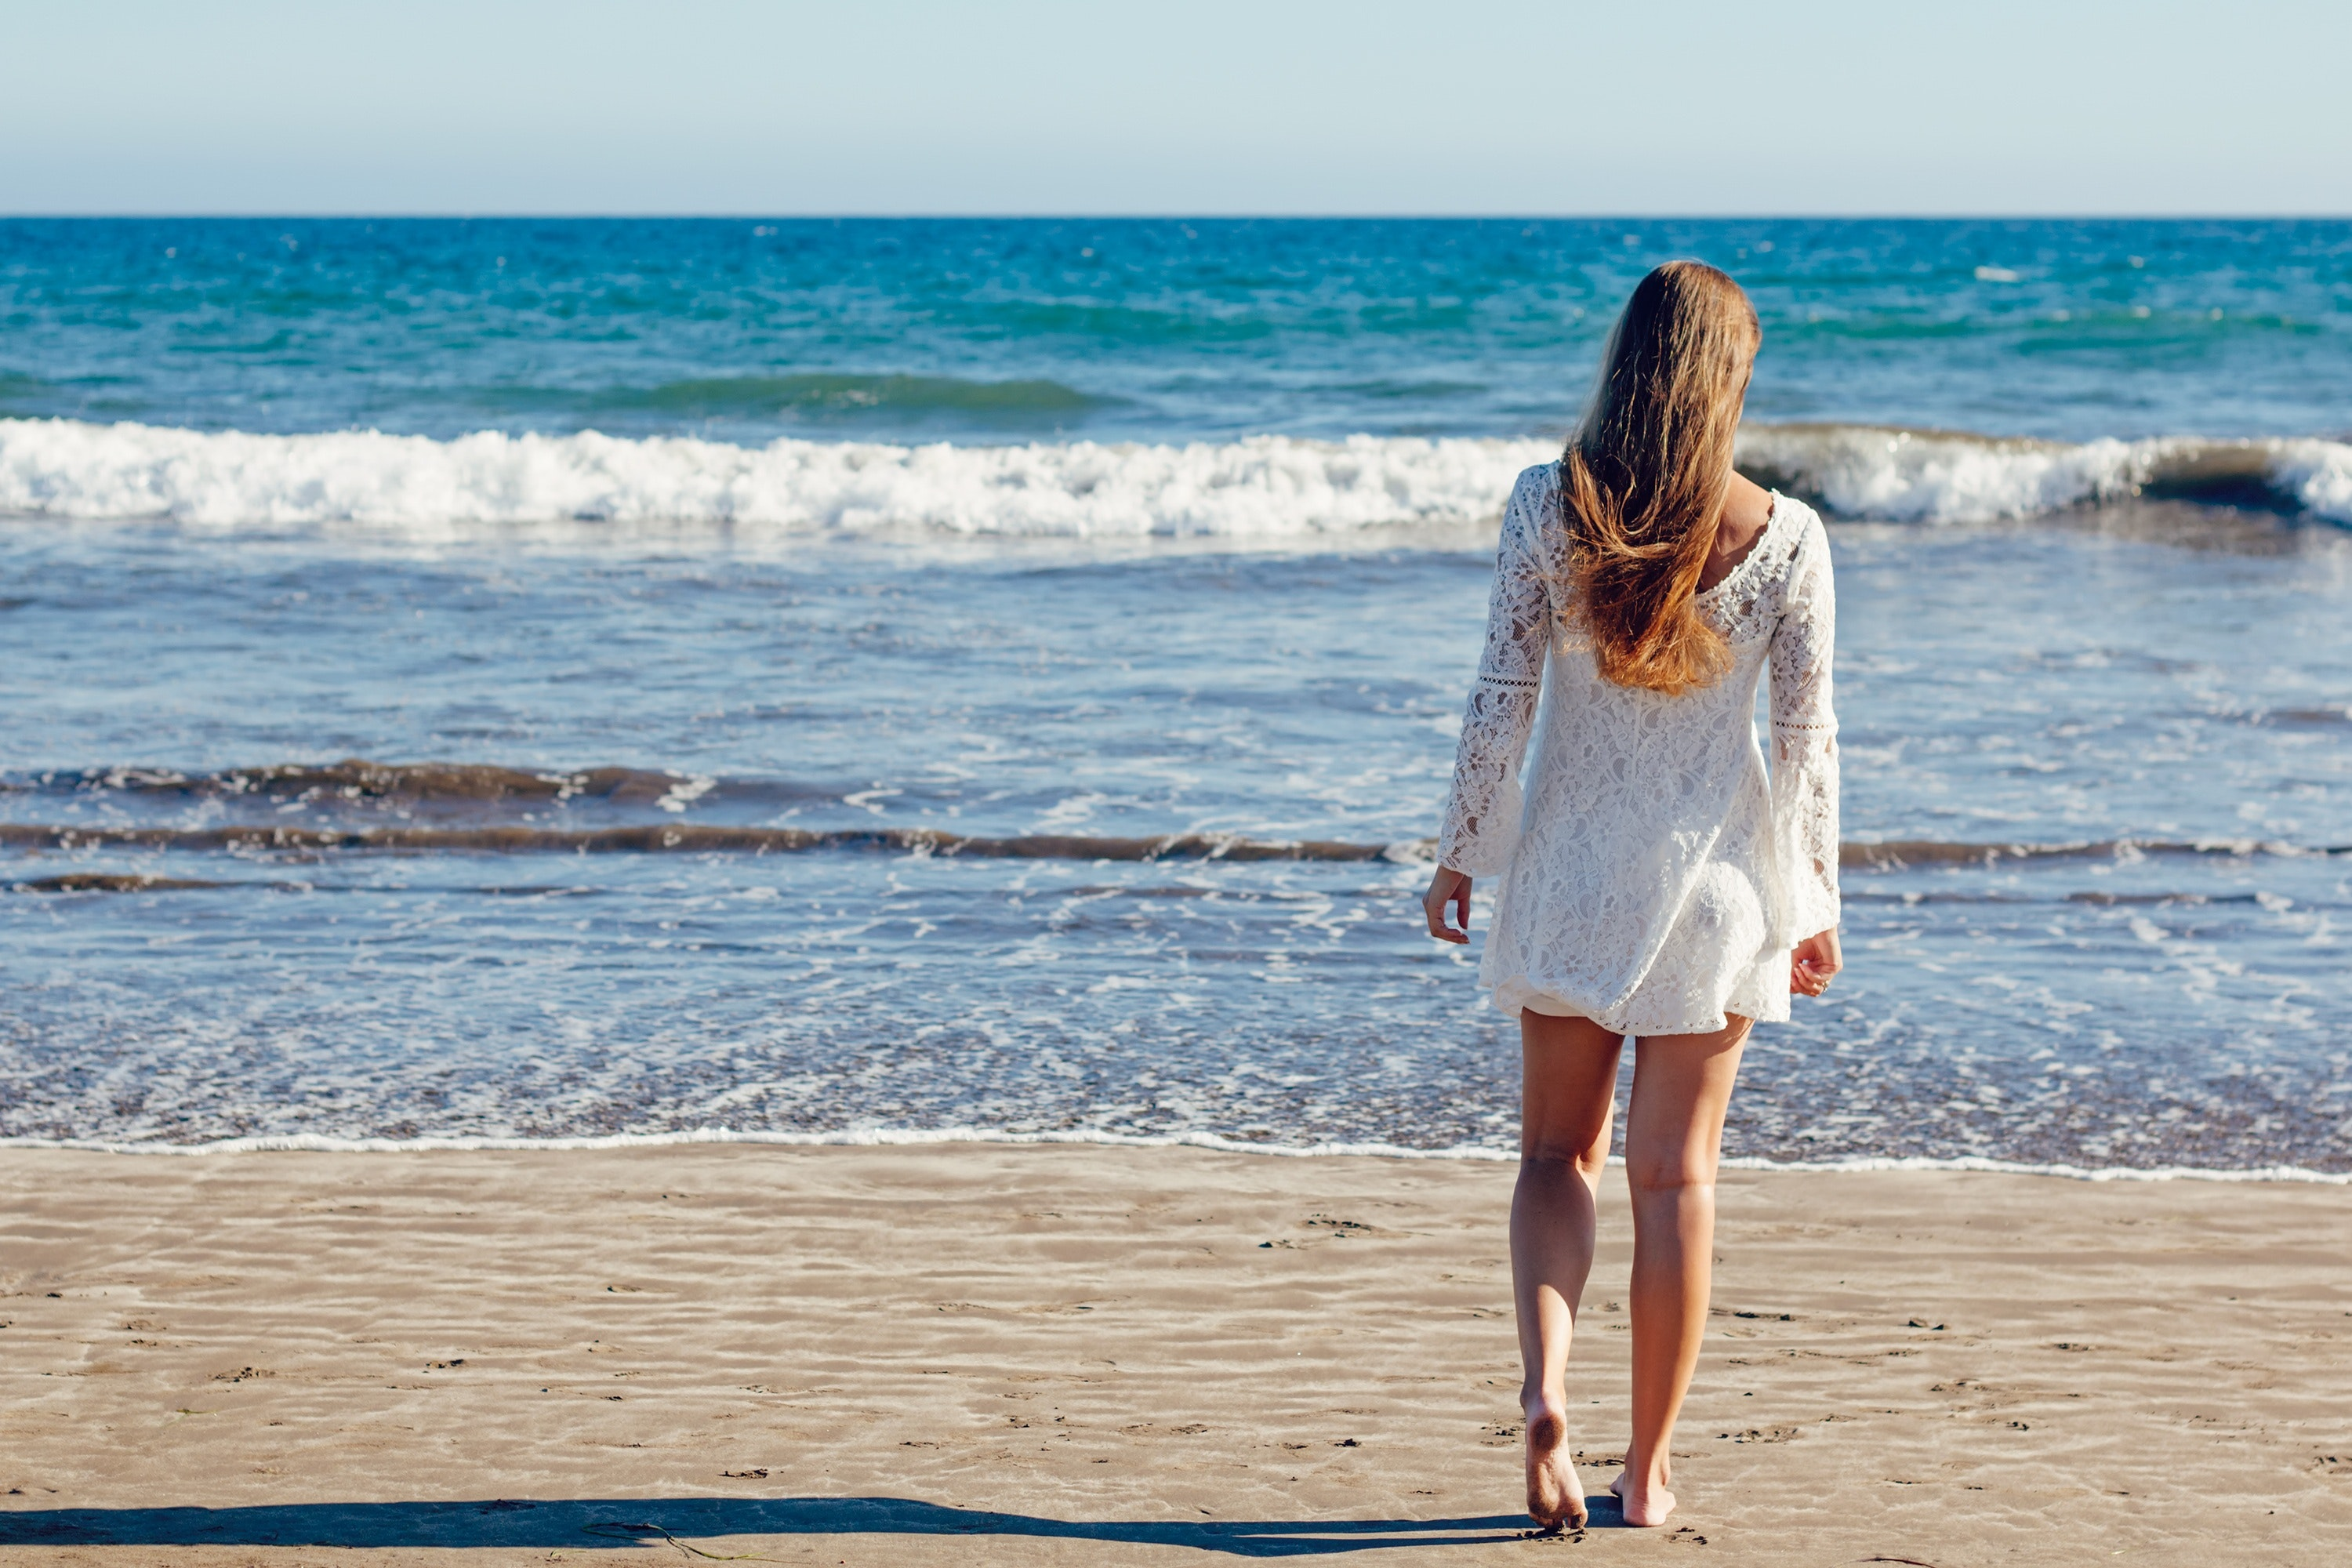 Brown Haired Woman in White Lace Long Sleeve Mini Dress Standing on Seashore, Beach, Shadow, Woman, White dress, HQ Photo